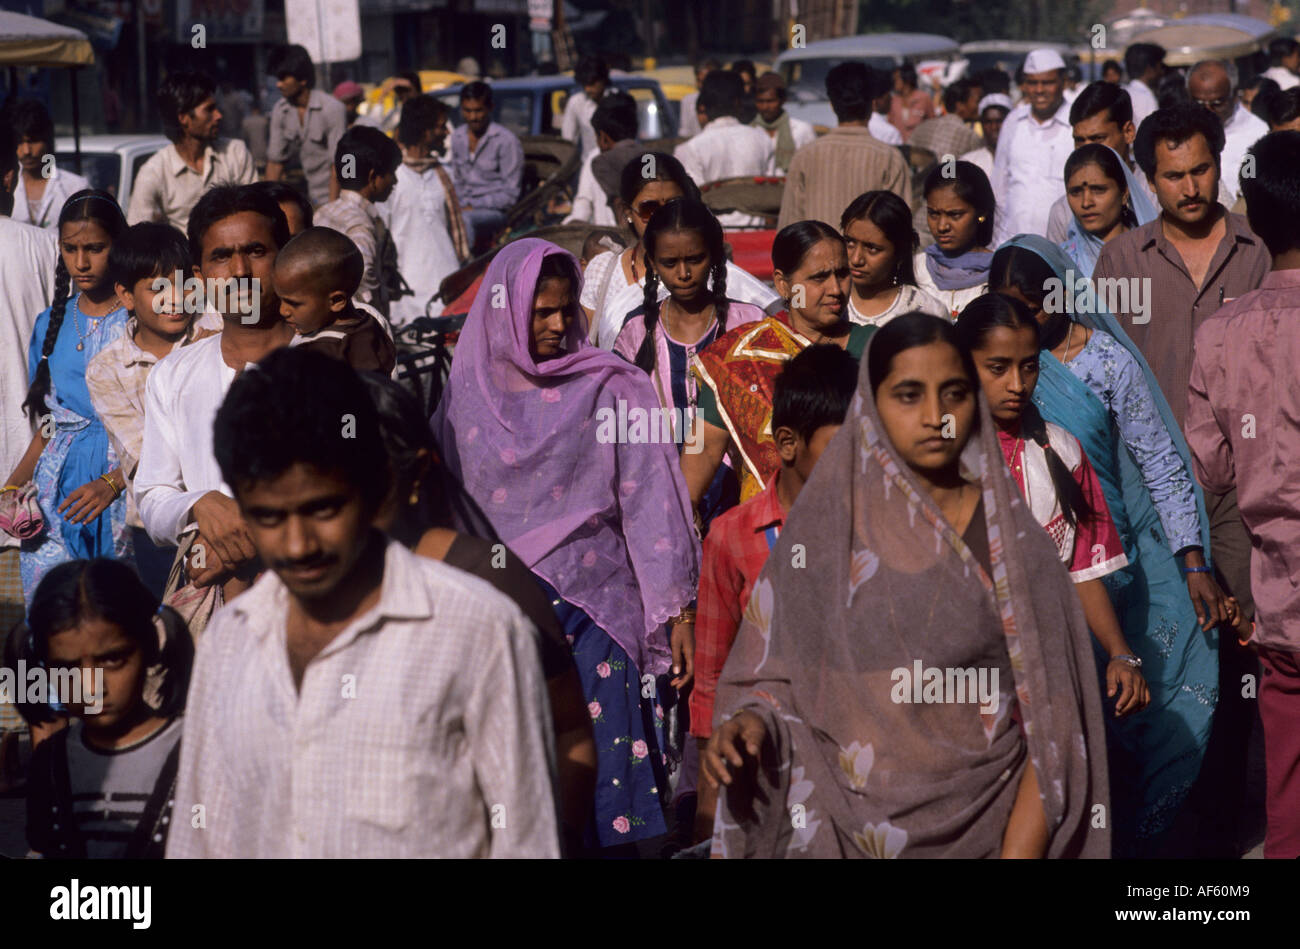 india indian population people crowd street - Stock Image